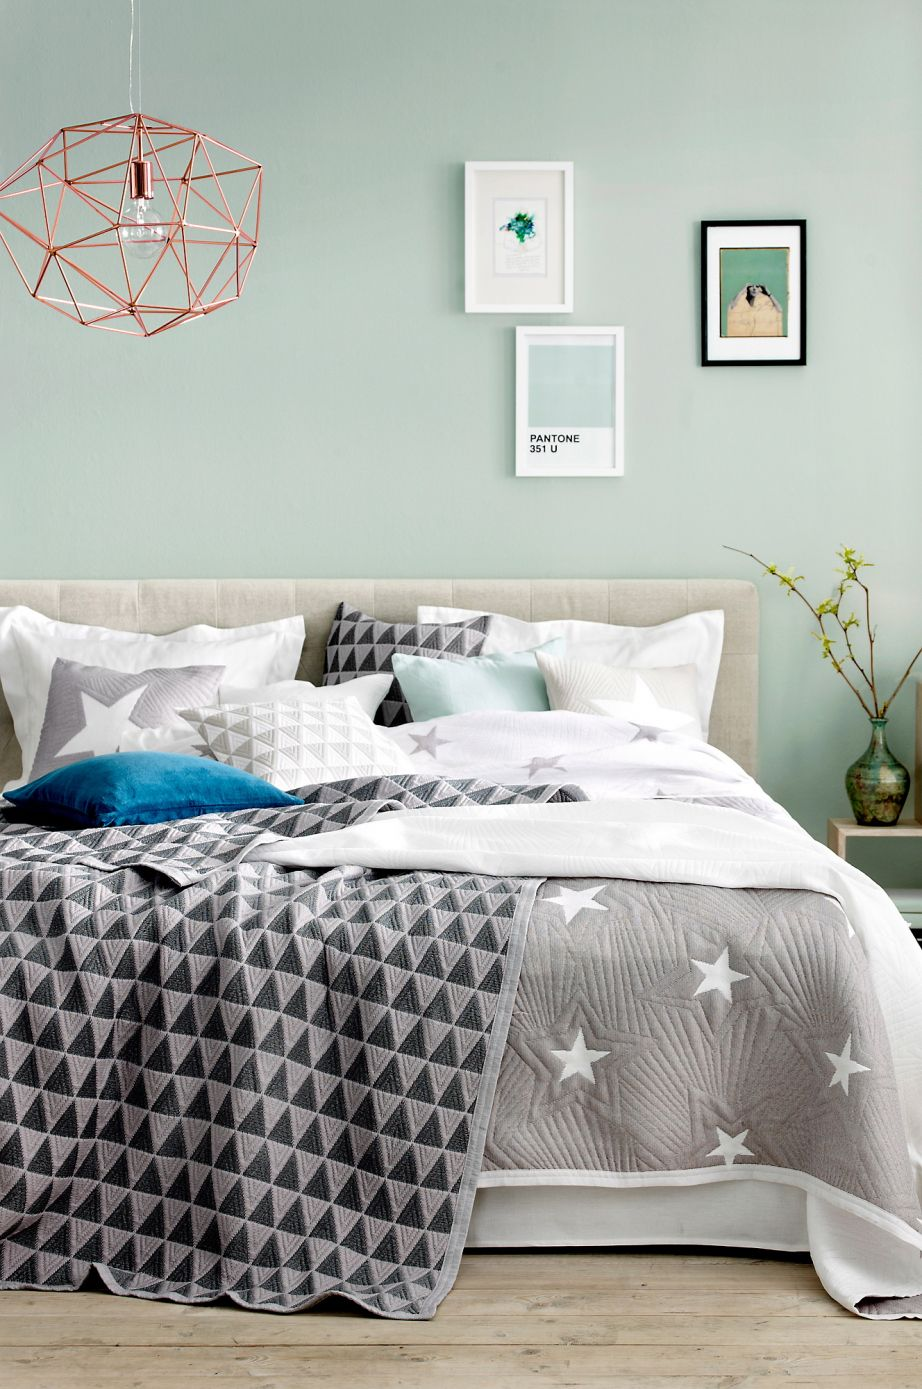 Ordinaire 55+ Mint Green Bedroom Decorating Ideas   Best Interior Paint Brand Check  More At Http